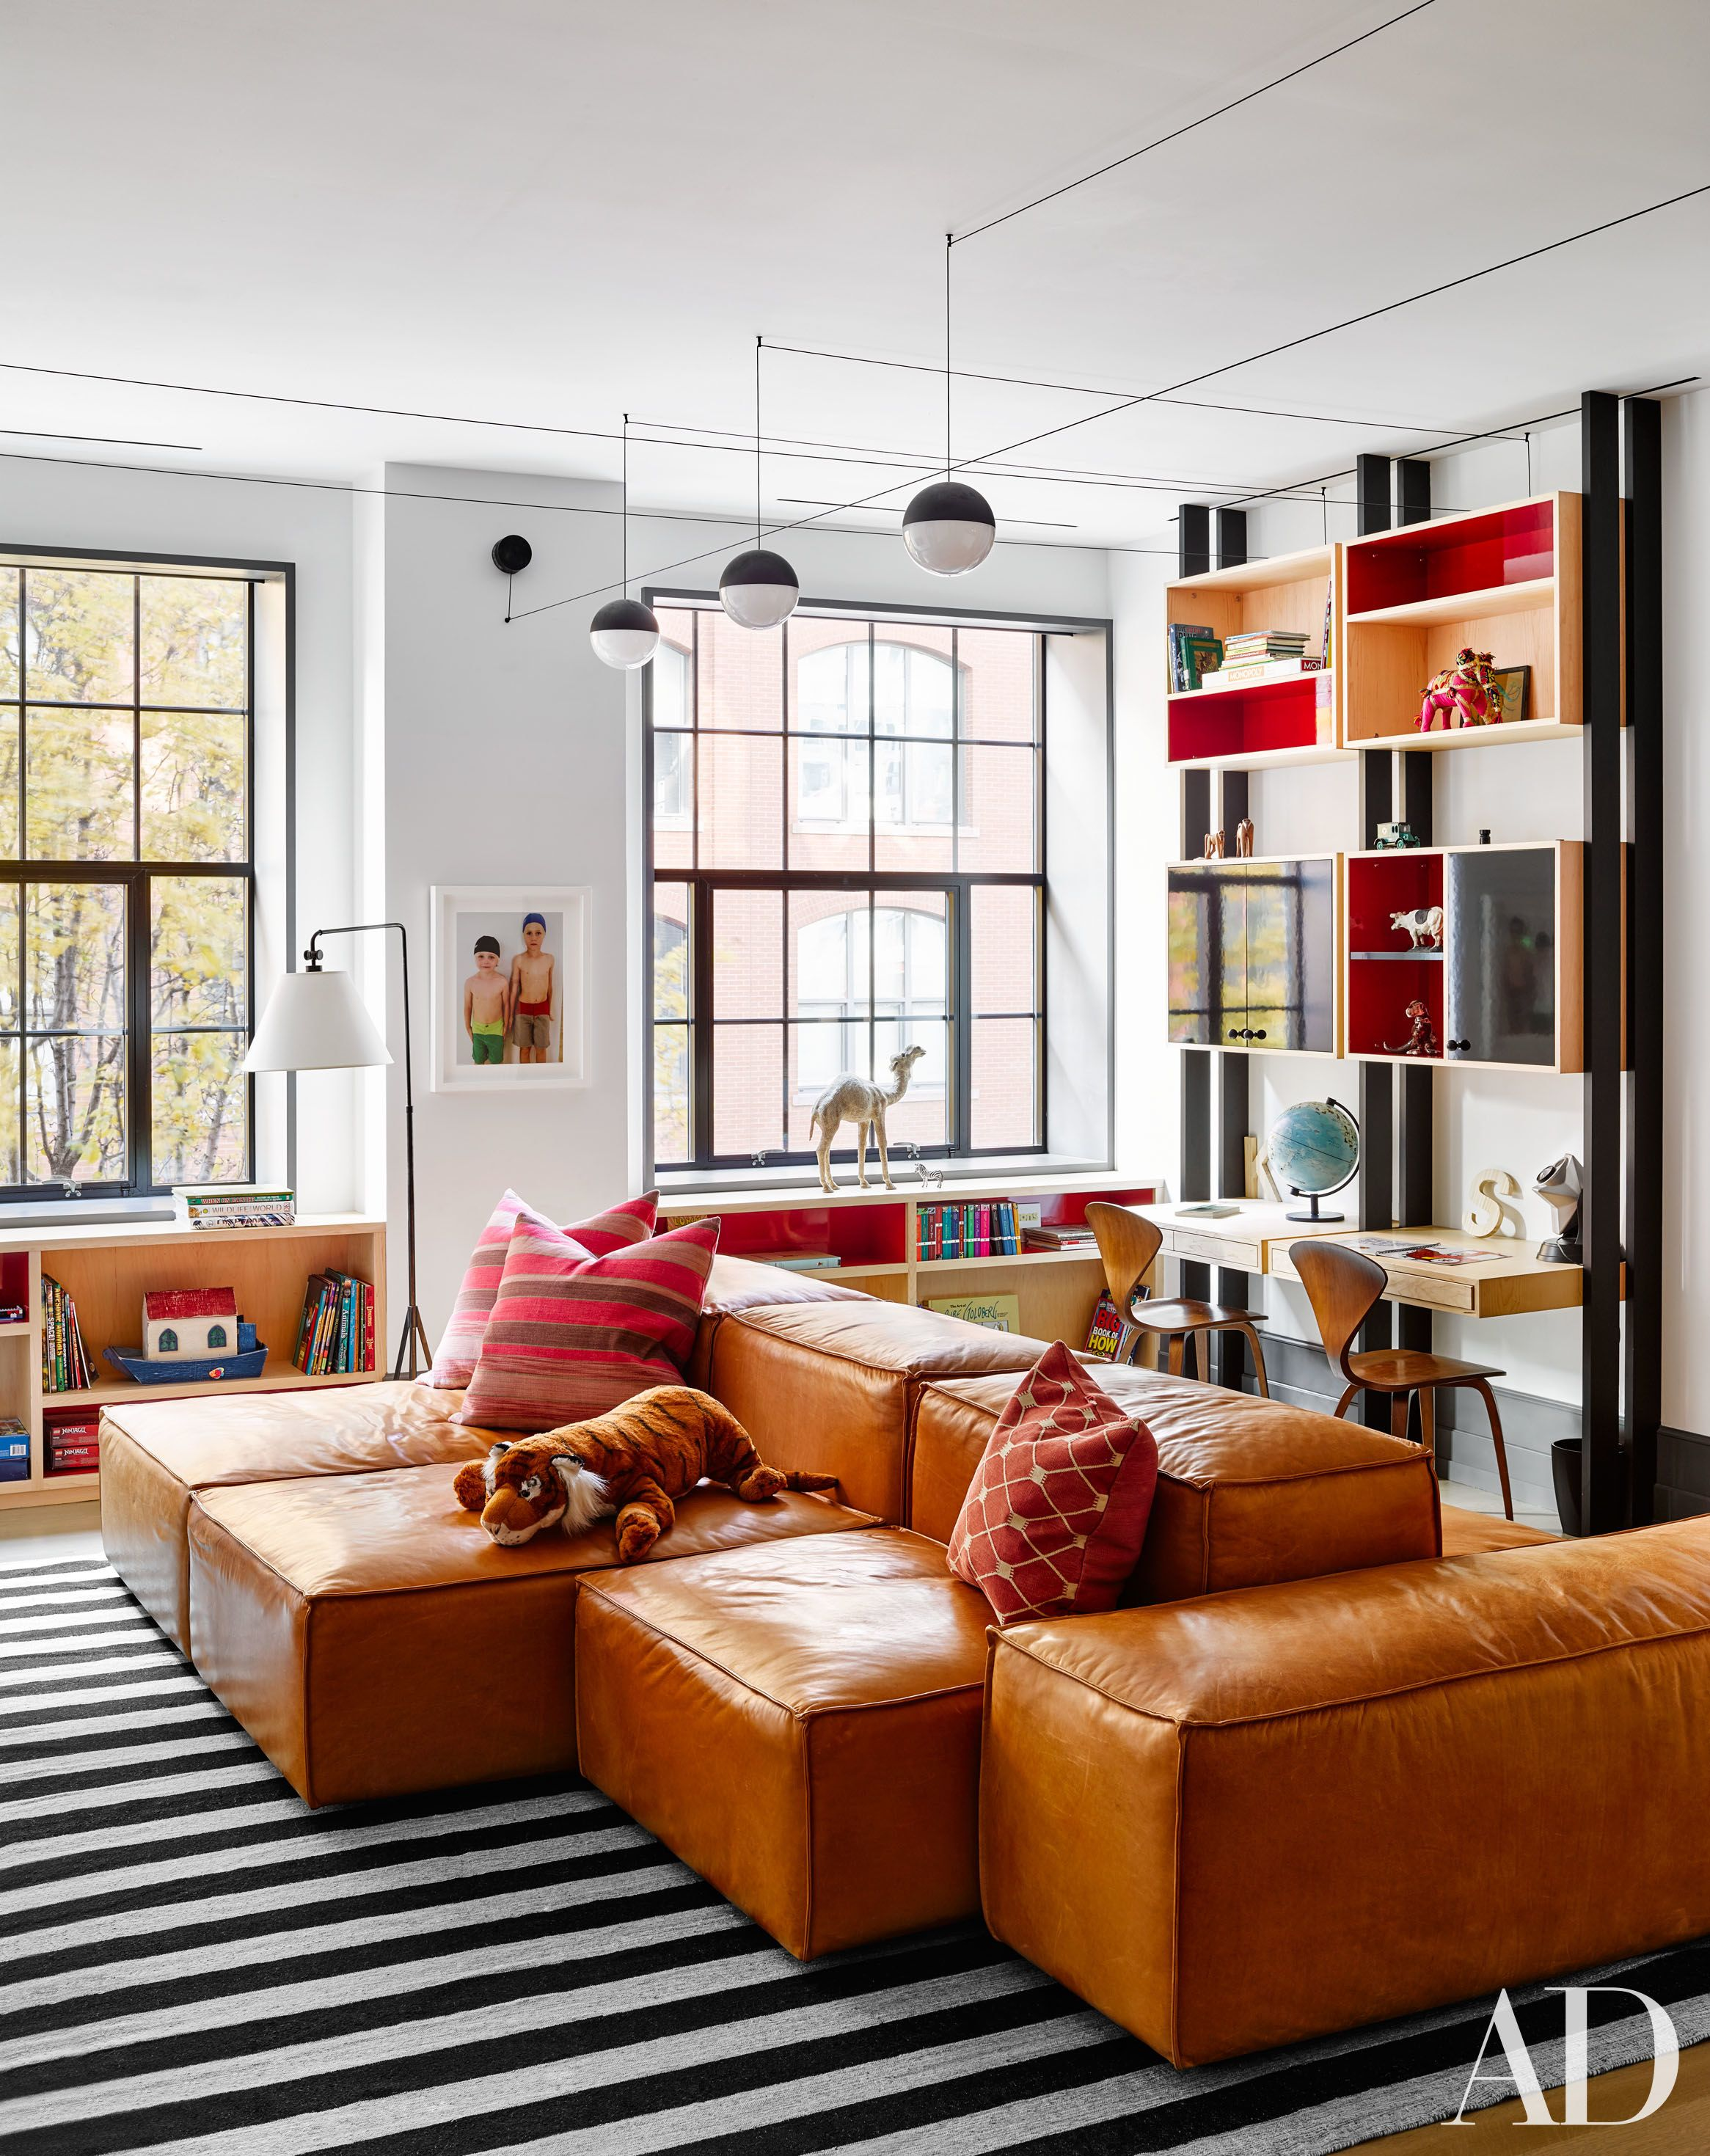 Naomi watts and liev schreibers stunning new york city apartment photos architectural digest